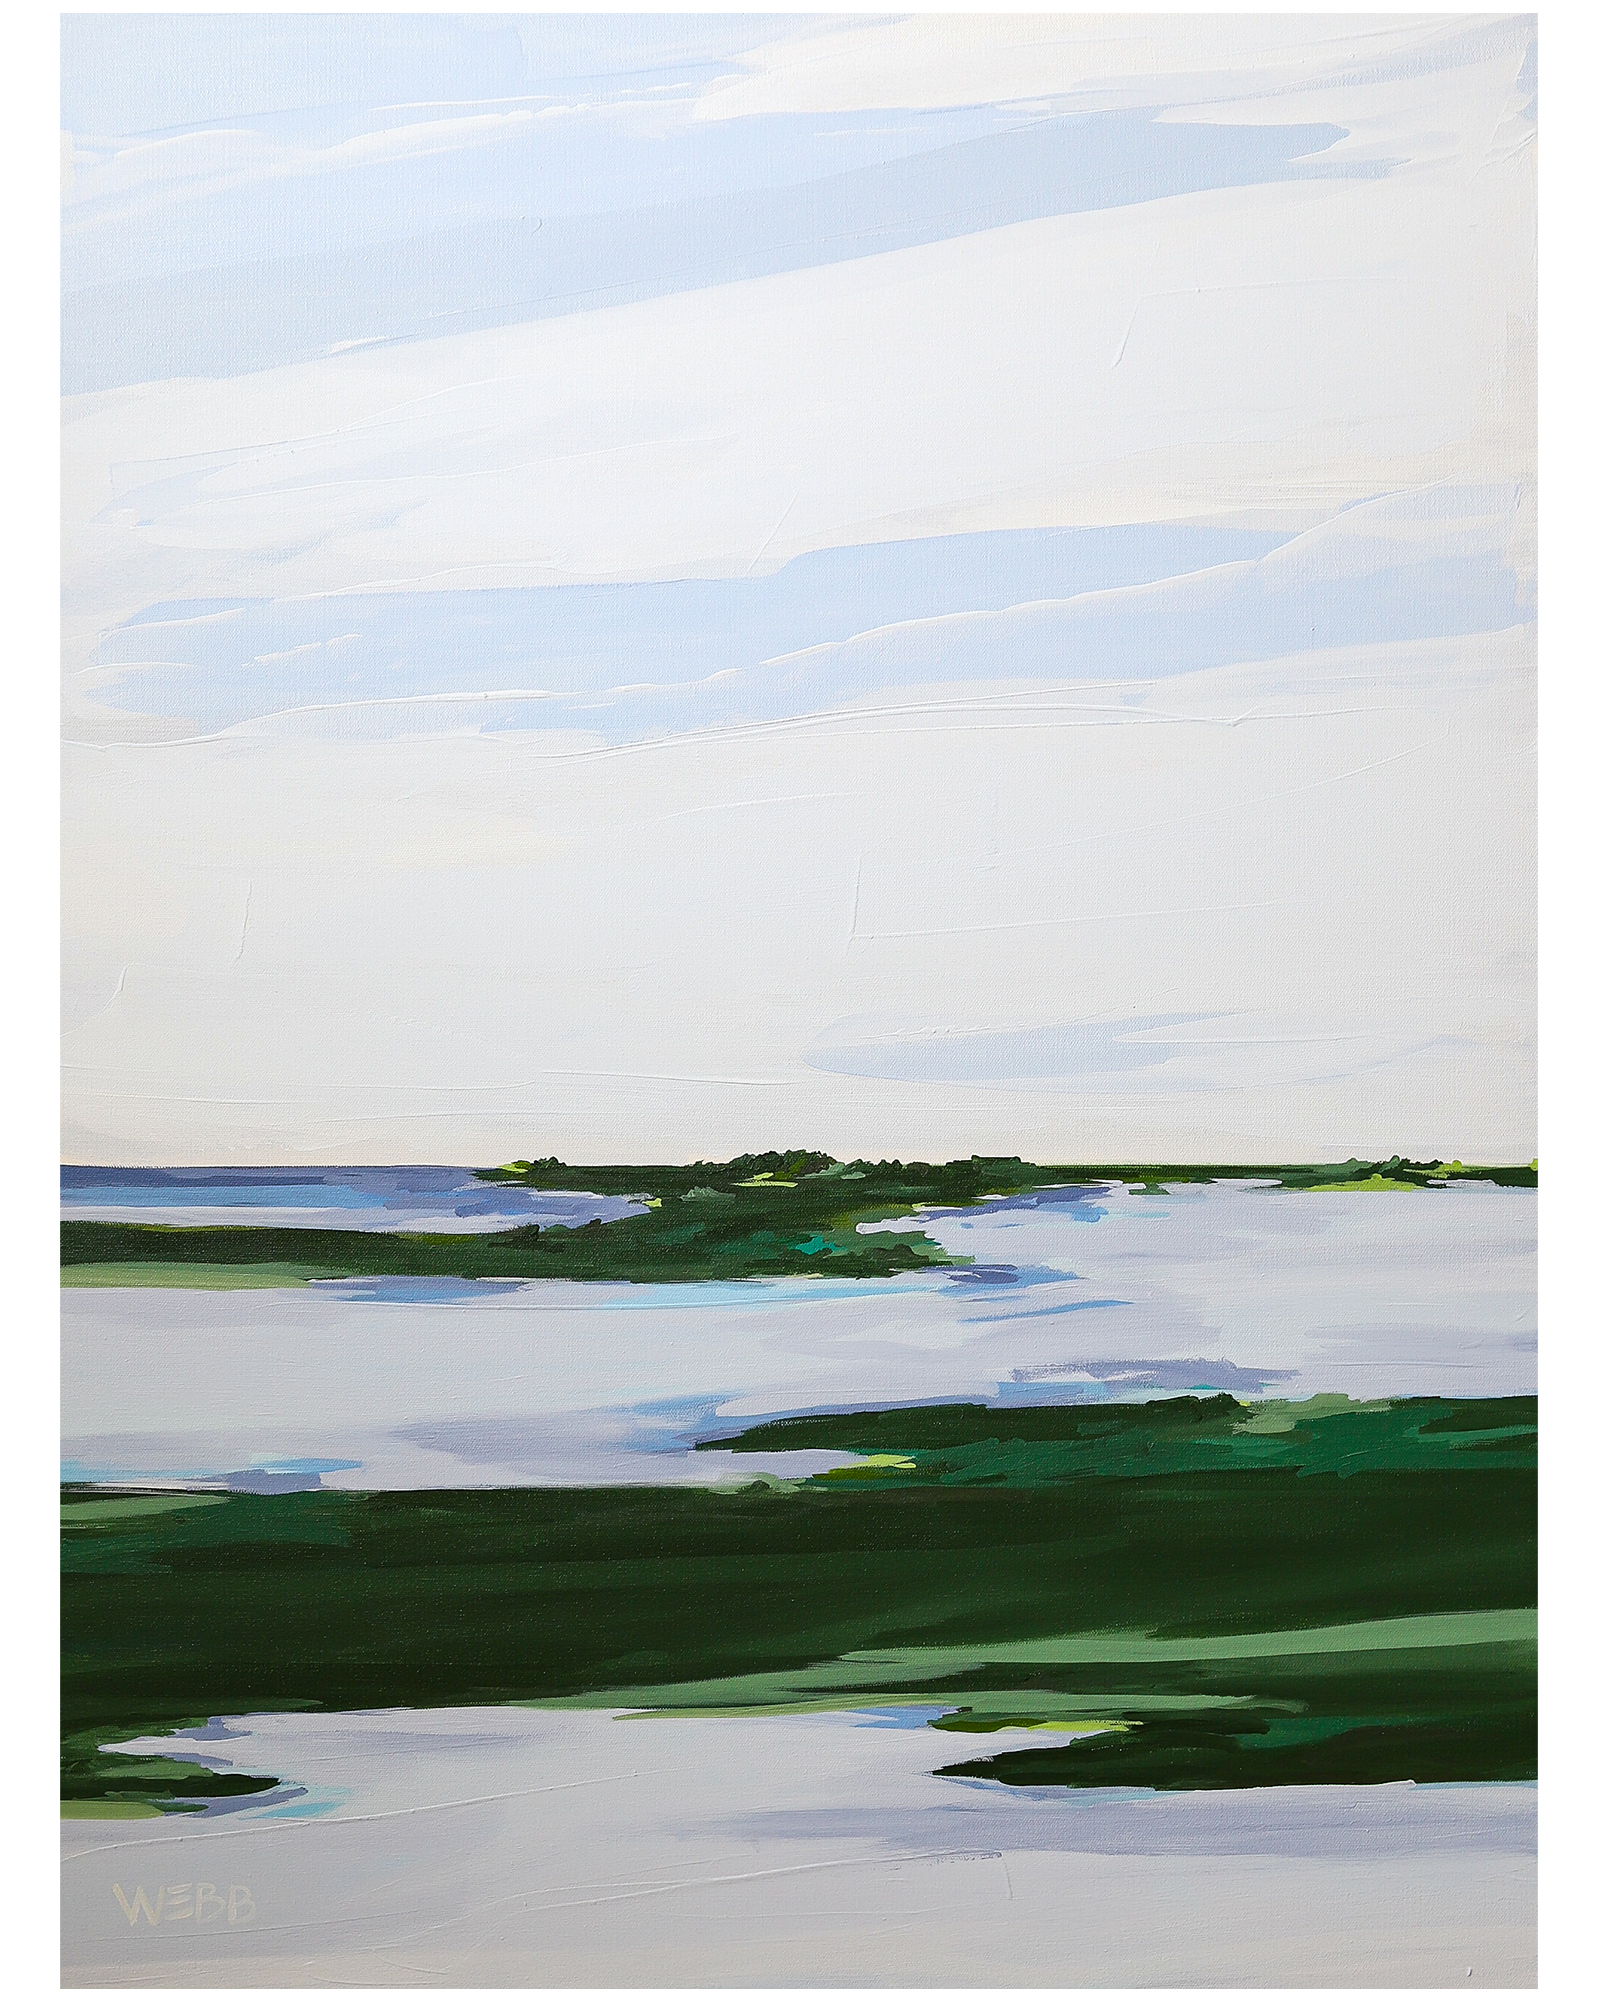 """Salt Marsh No. 2"" by Rebekah Webb,"